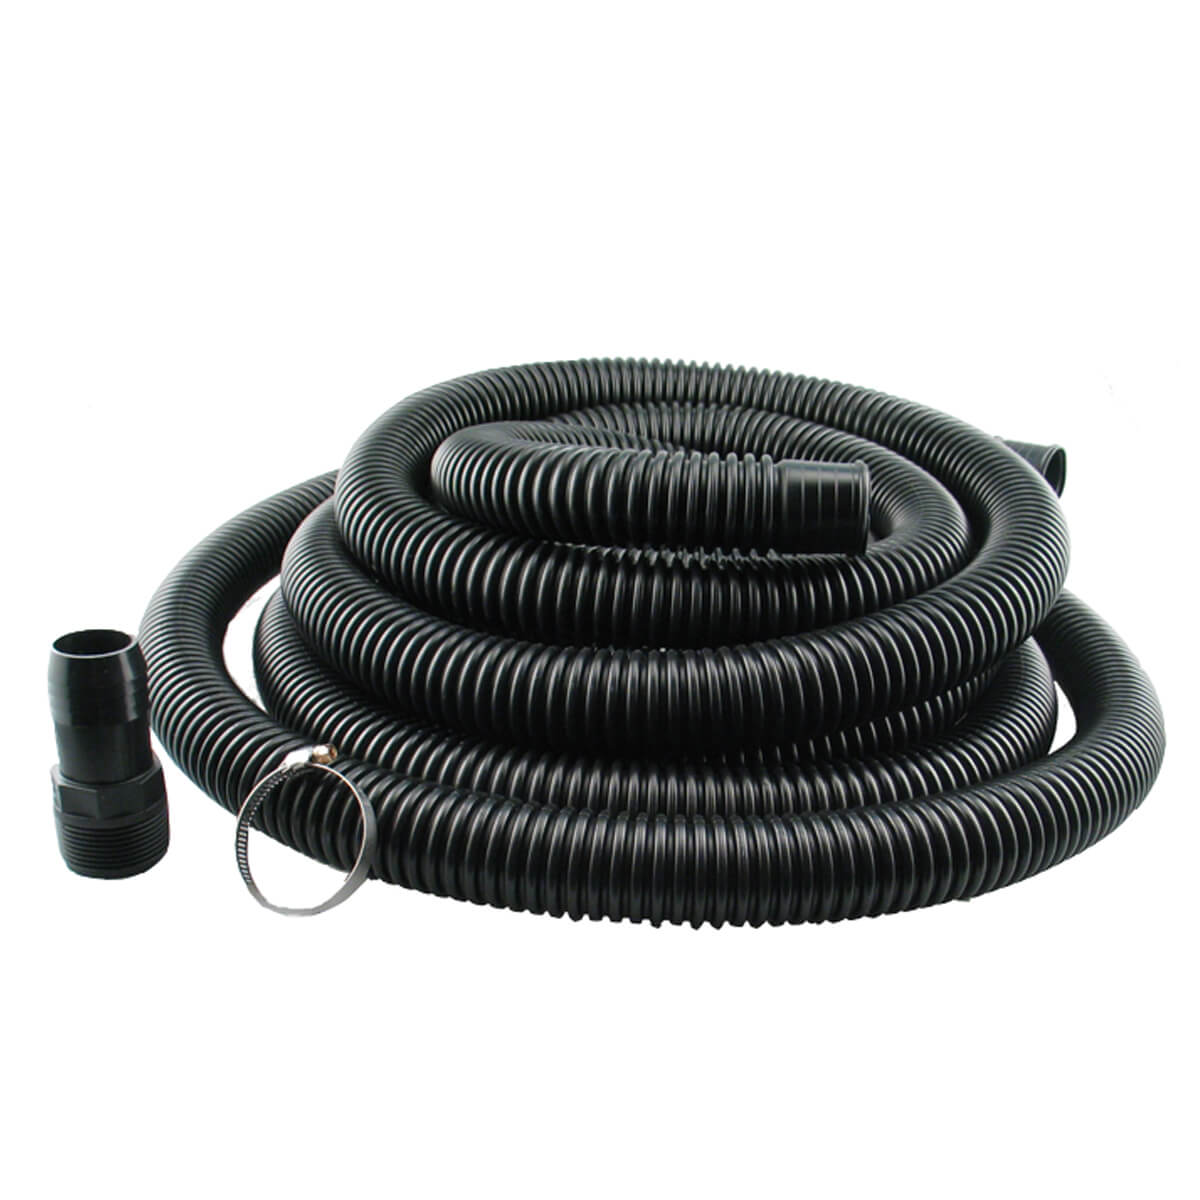 "Sump Pump Discharge Kit - 1-1/2"" x 24'"